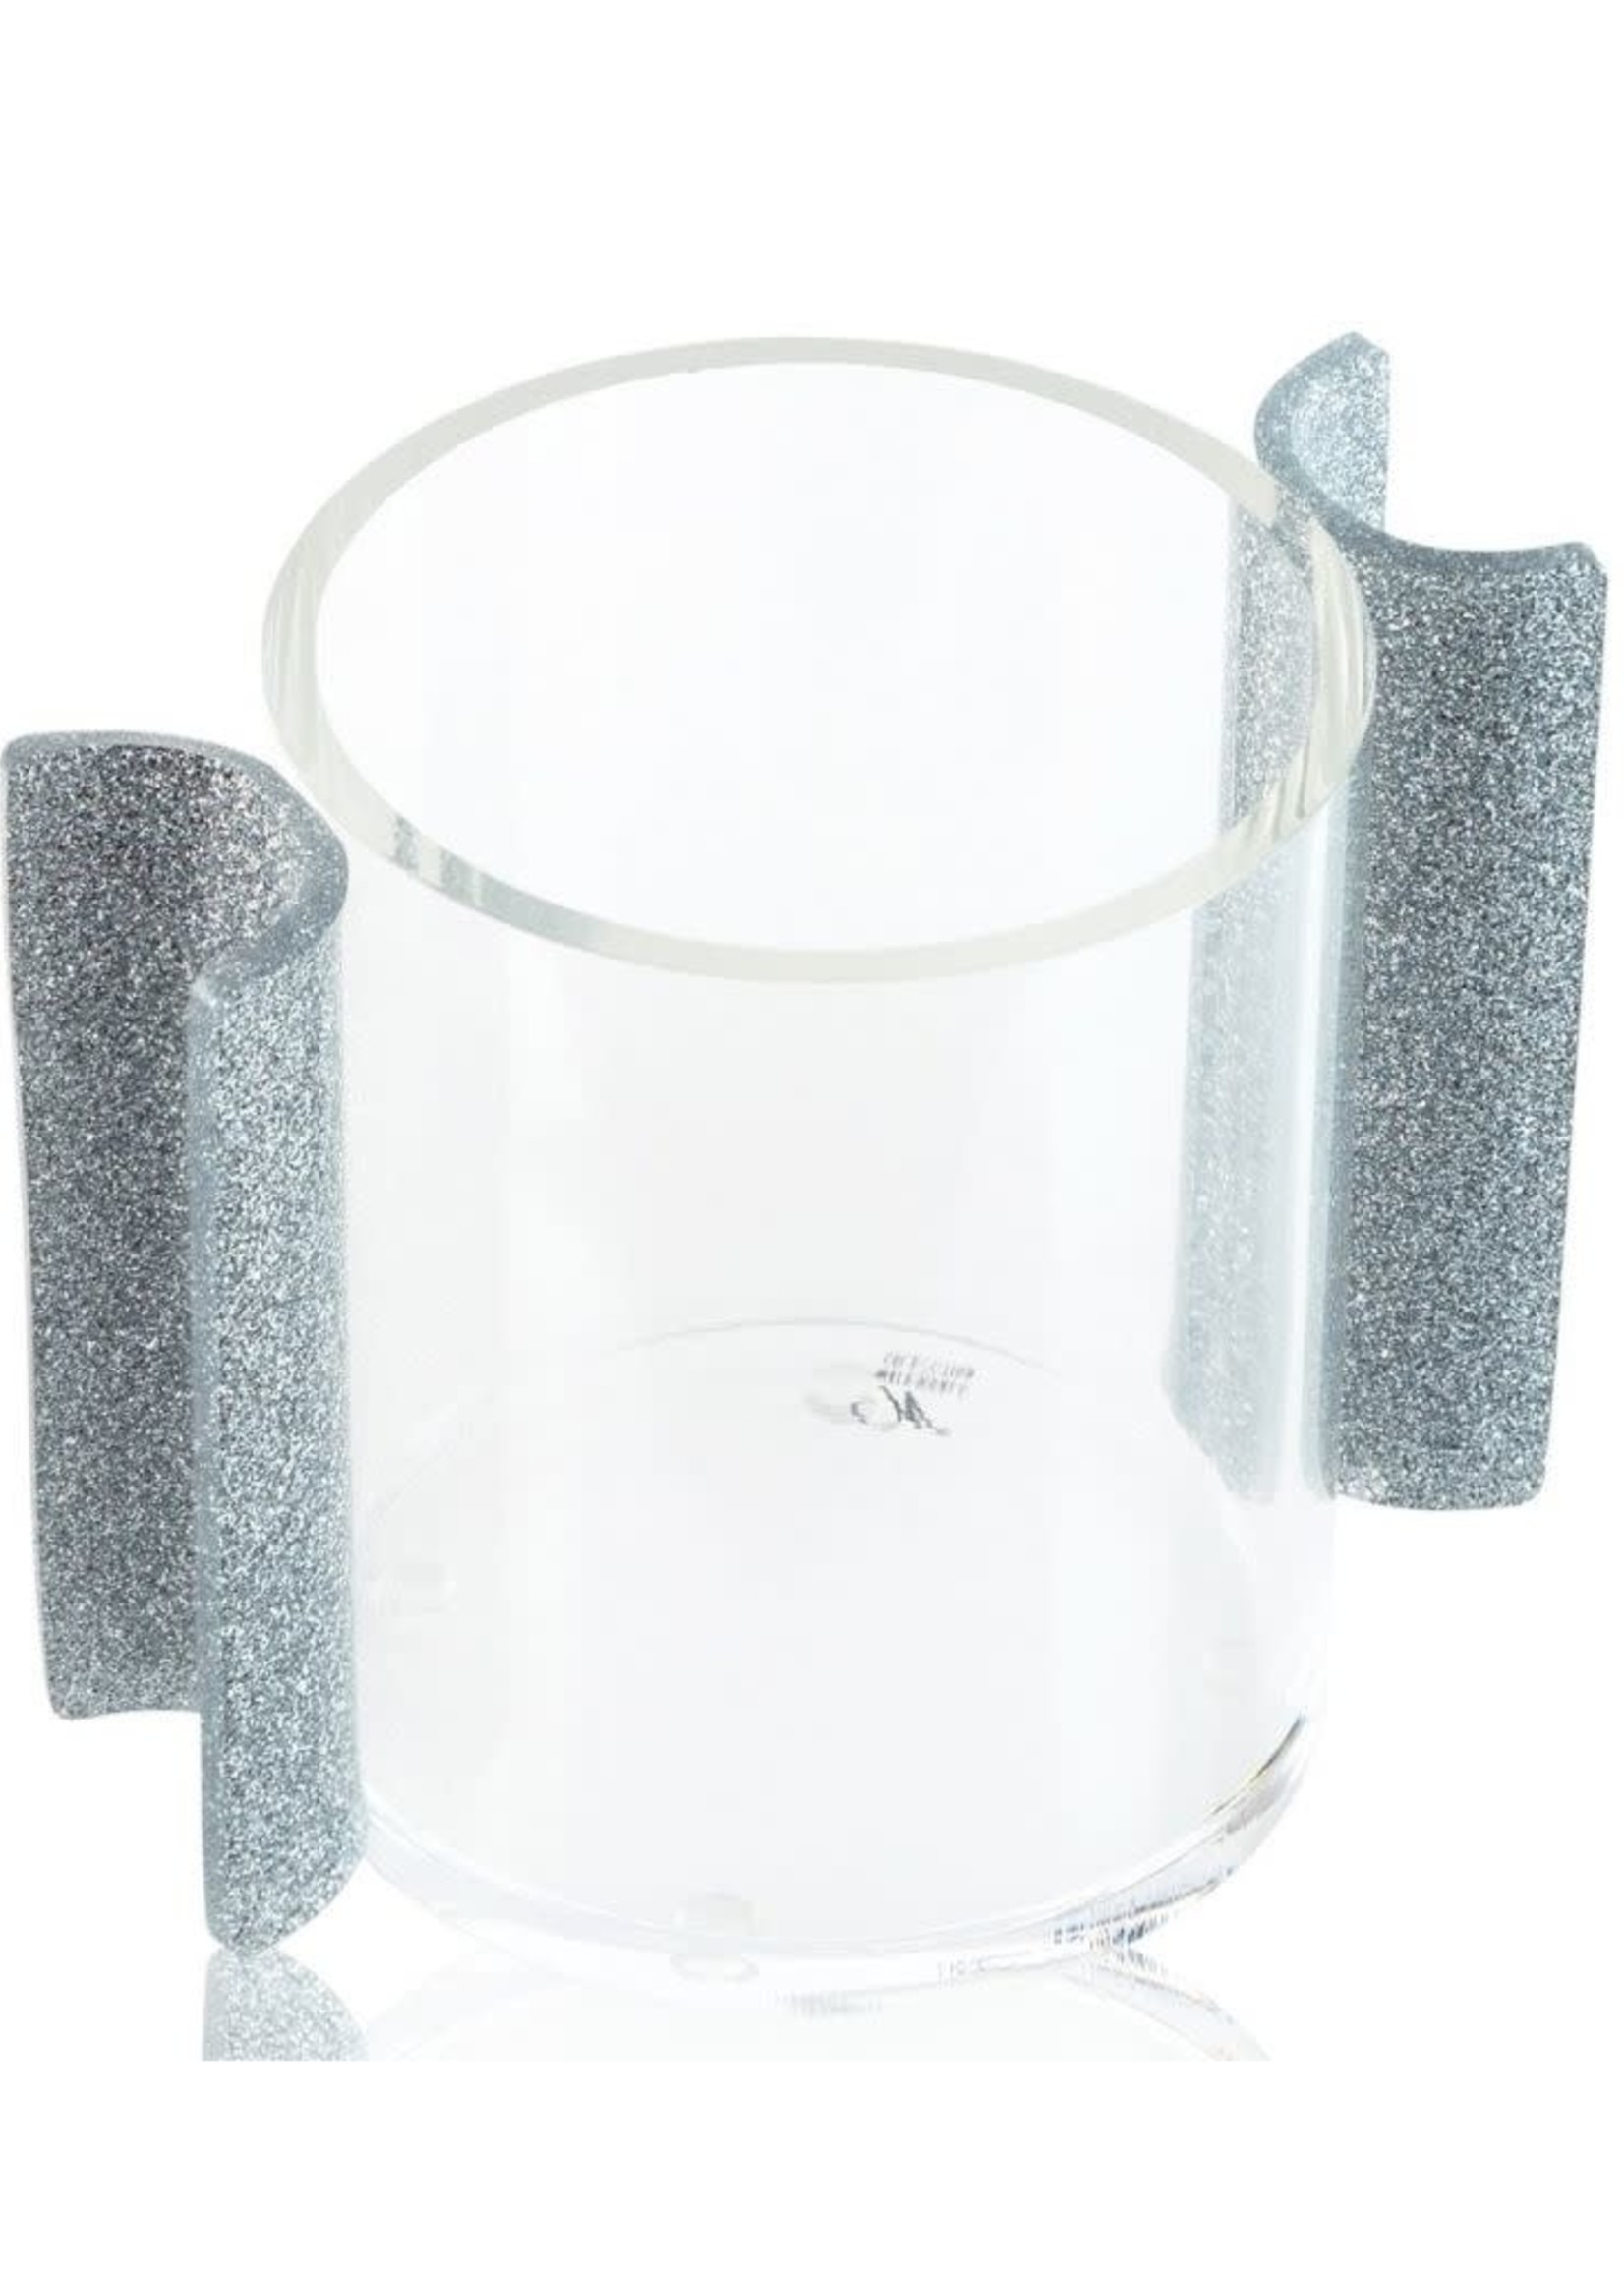 Round Washing Cup // Silver Glitter